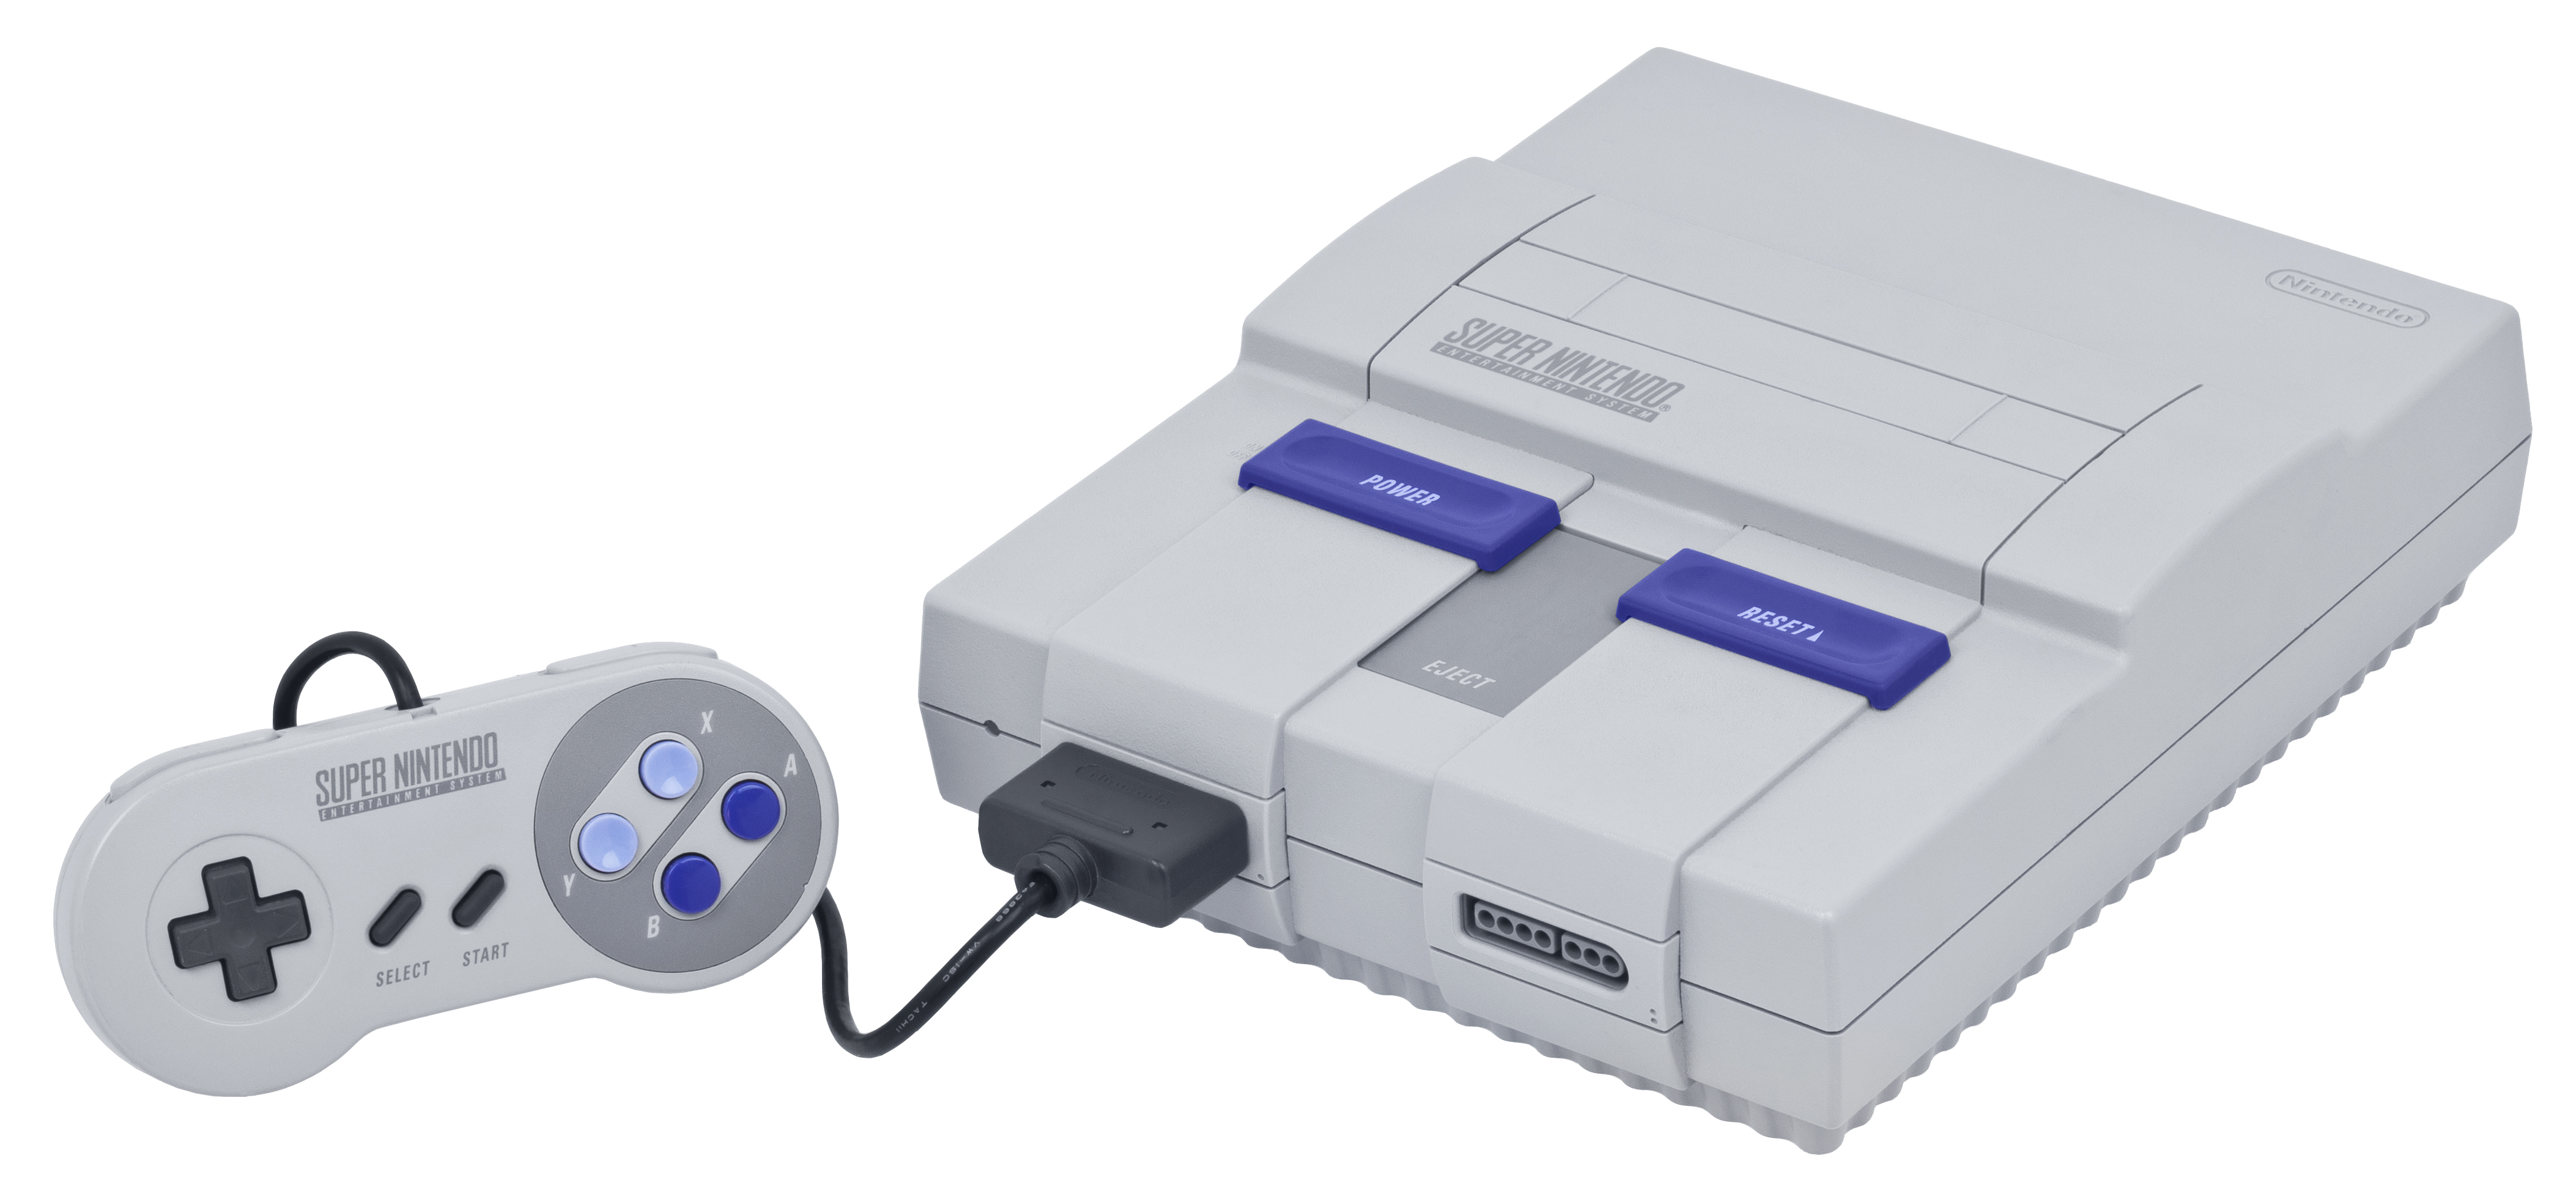 12 Super Nintendo Hd Wallpapers Background Images Wallpaper Abyss